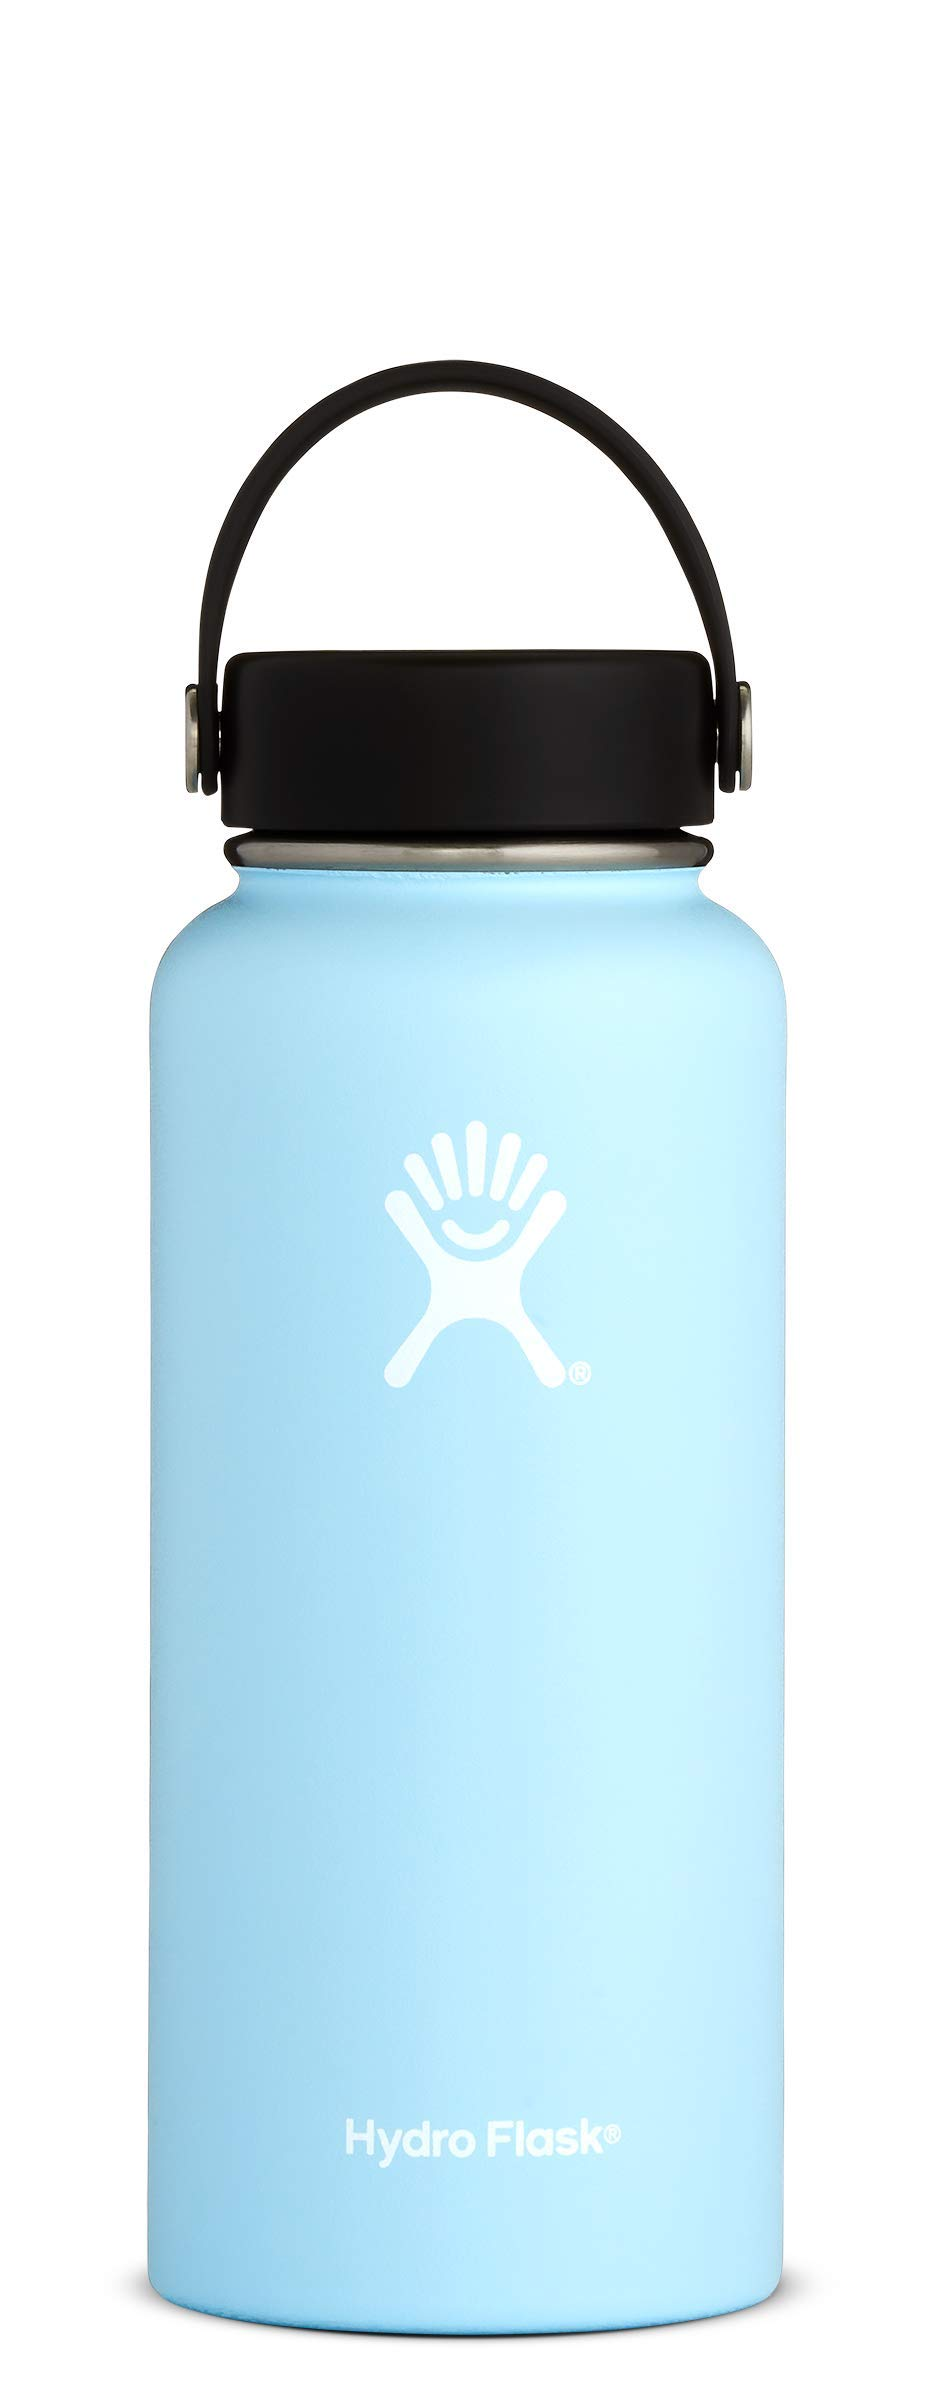 Hydro Flask Stainless Steel Water Bottle, Wide Mouth with BPA Free Flex Cap, 32 oz, Frost by Hydro Flask